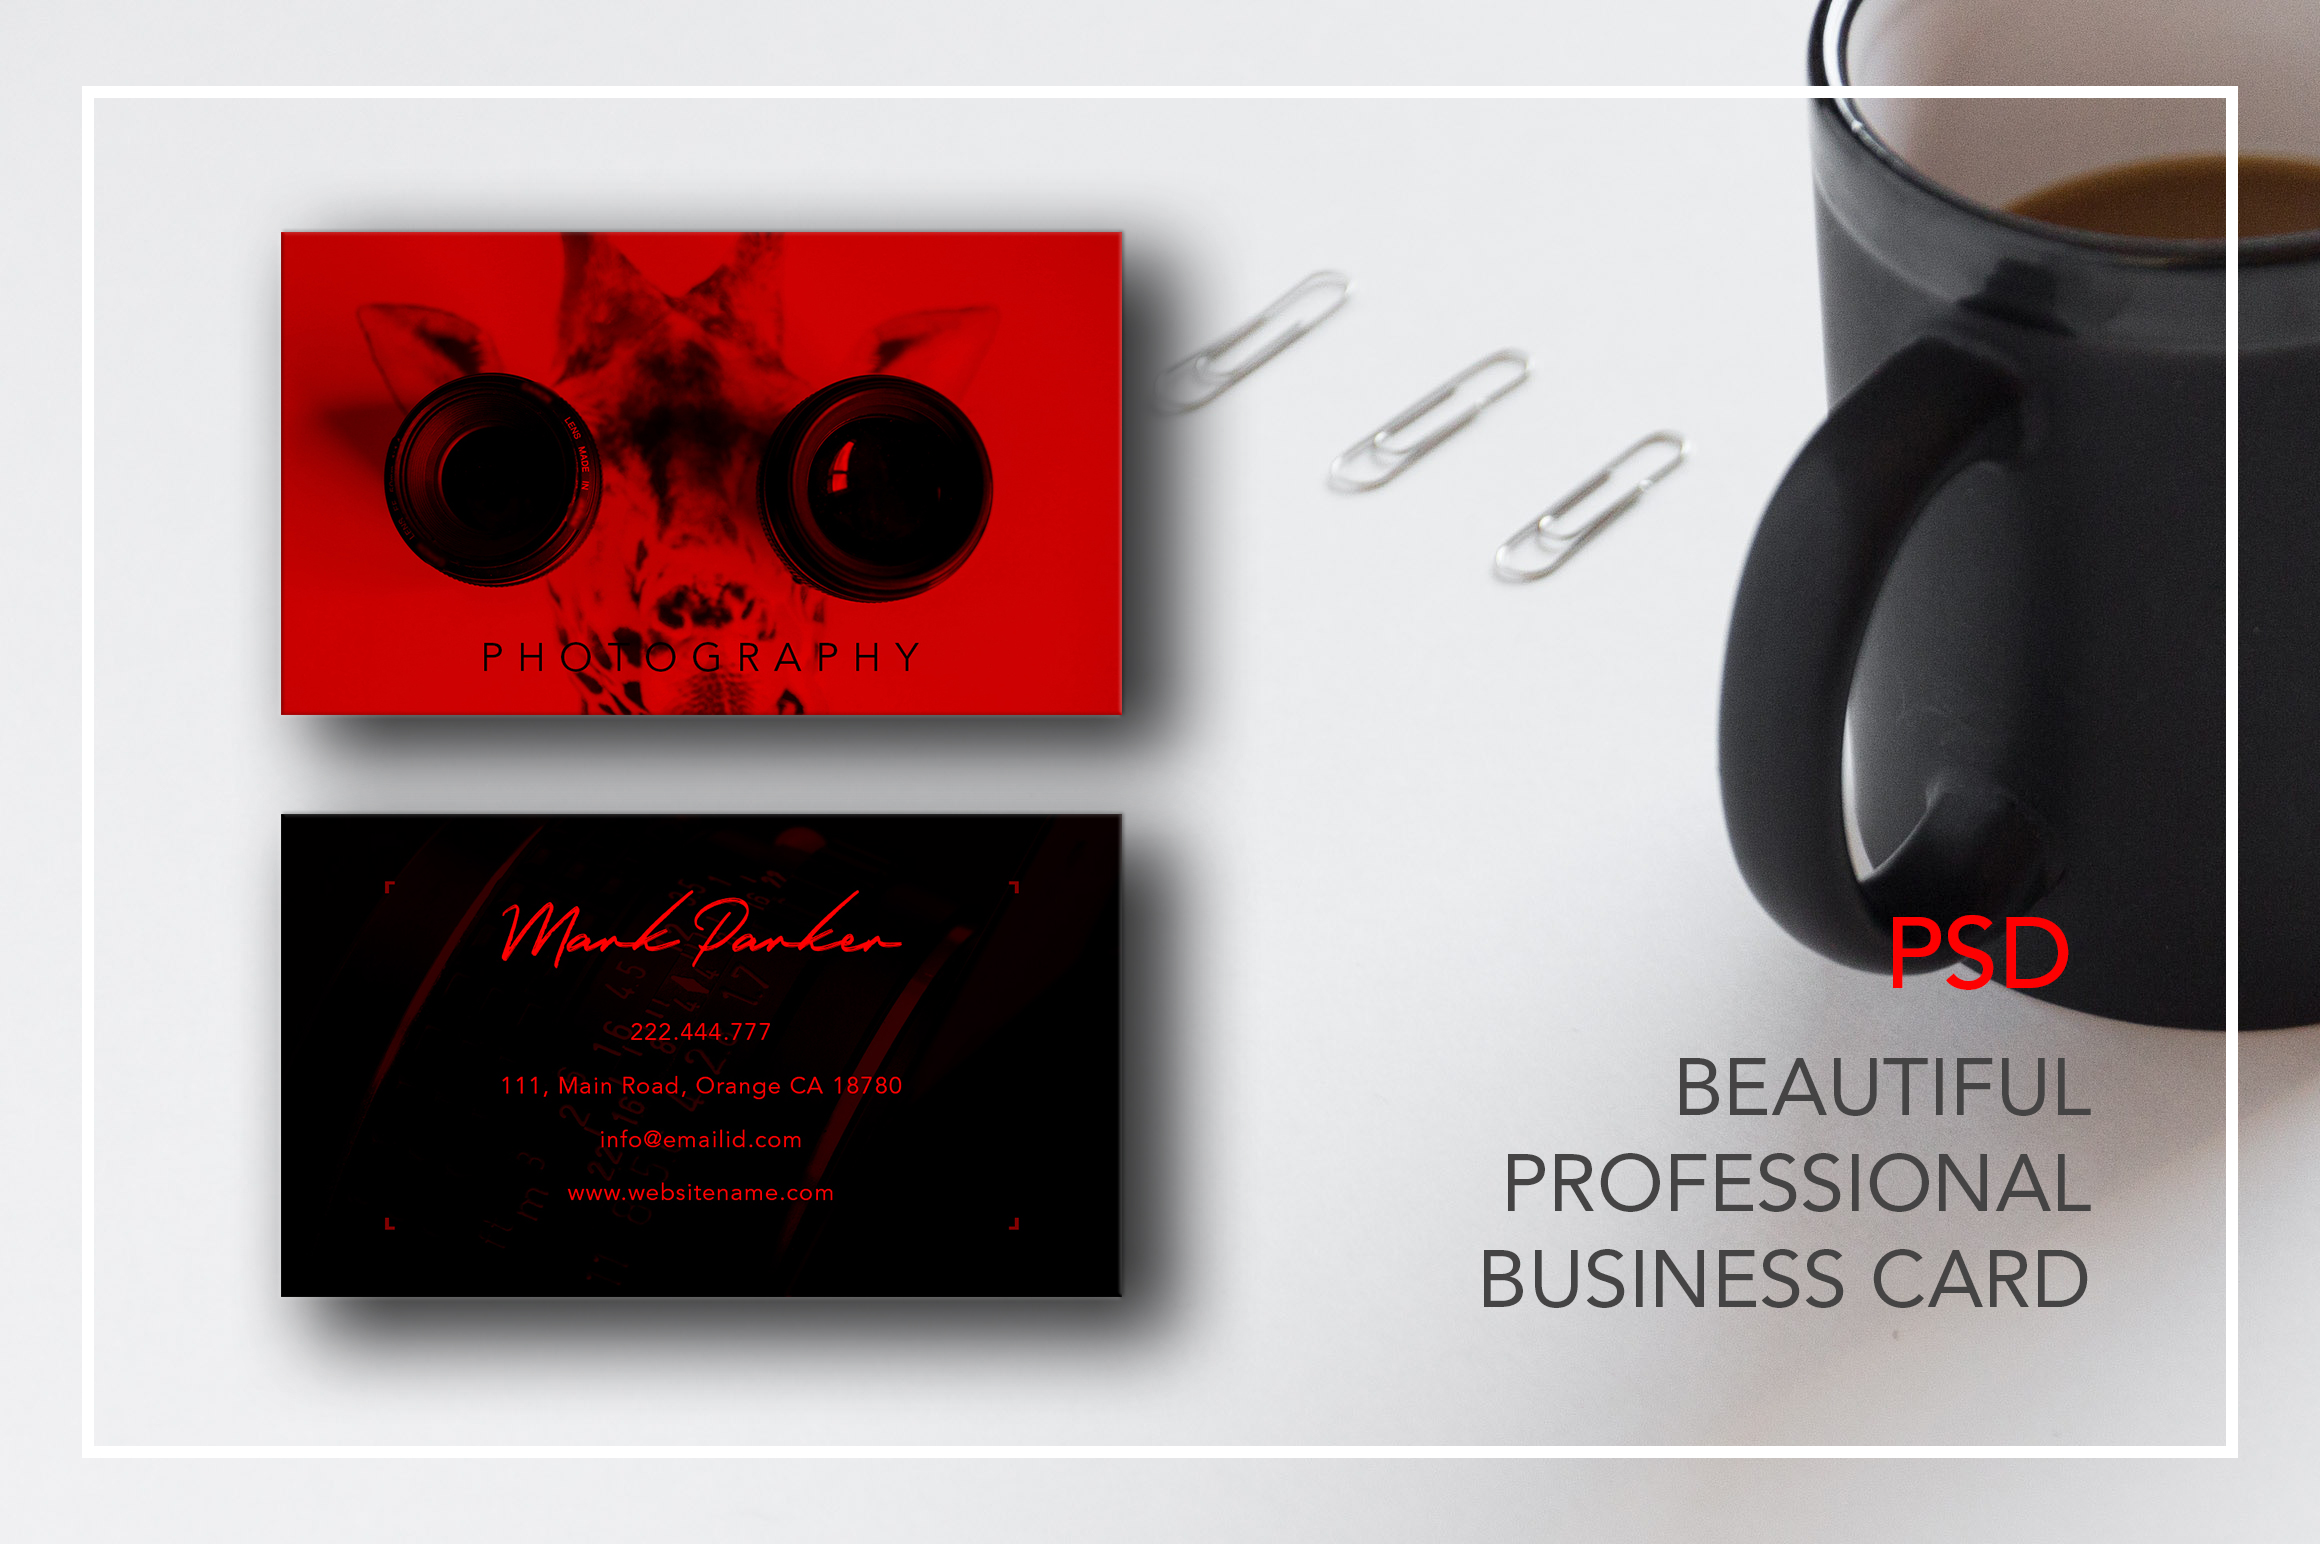 Professional Photography new business card example image 3